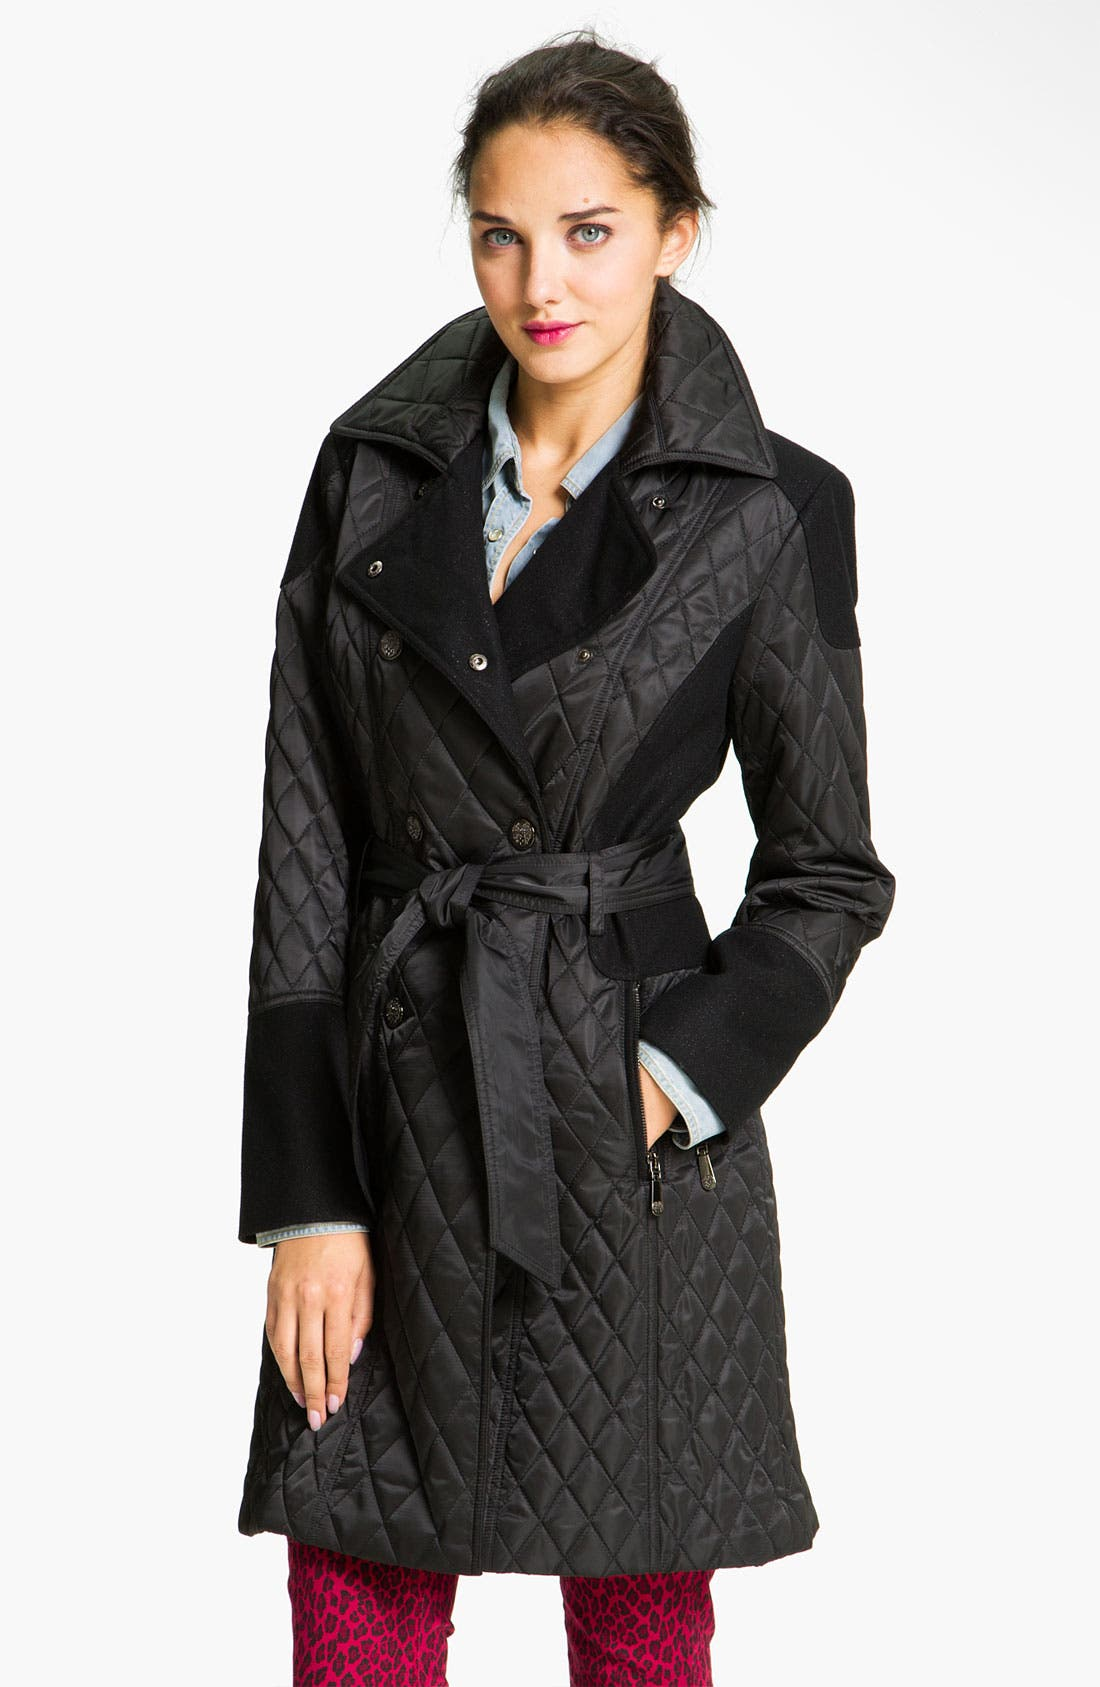 Alternate Image 1 Selected - Vince Camuto Mixed Media Quilted Trench Coat